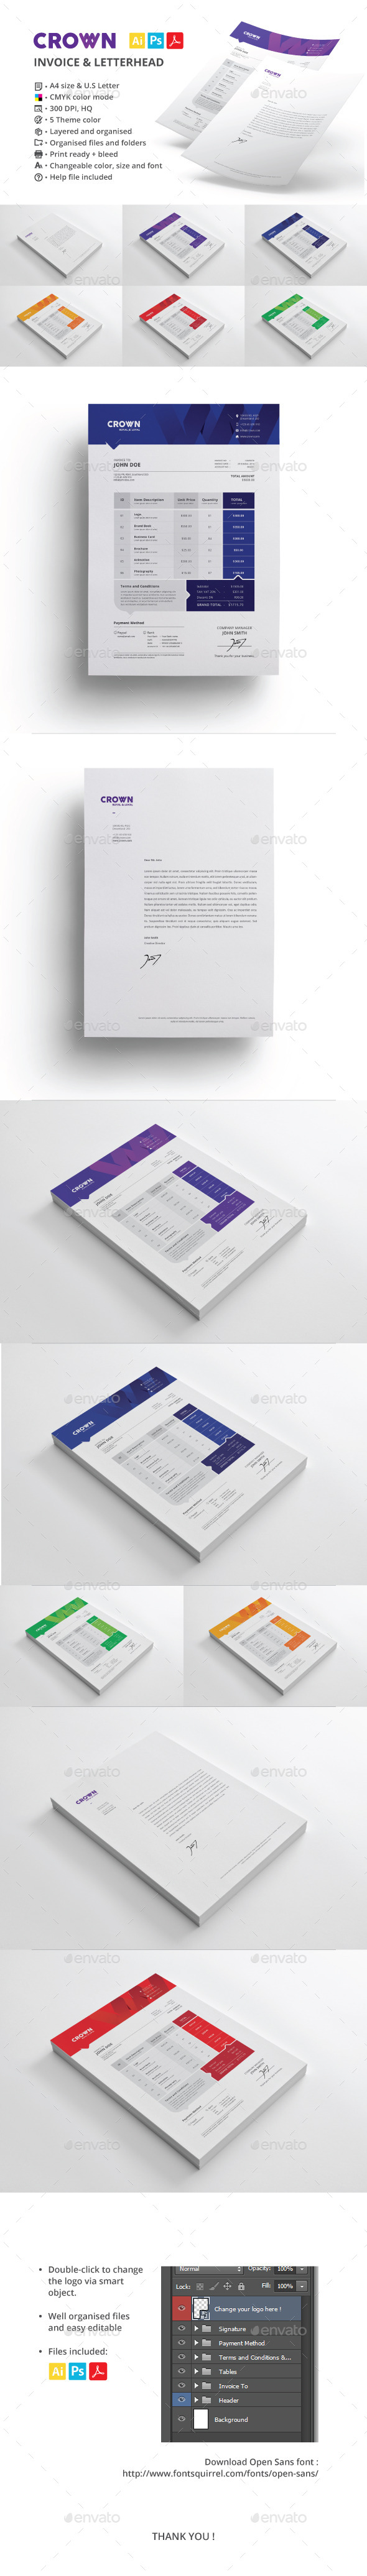 GraphicRiver Crown Invoice & Letterhead 9376993